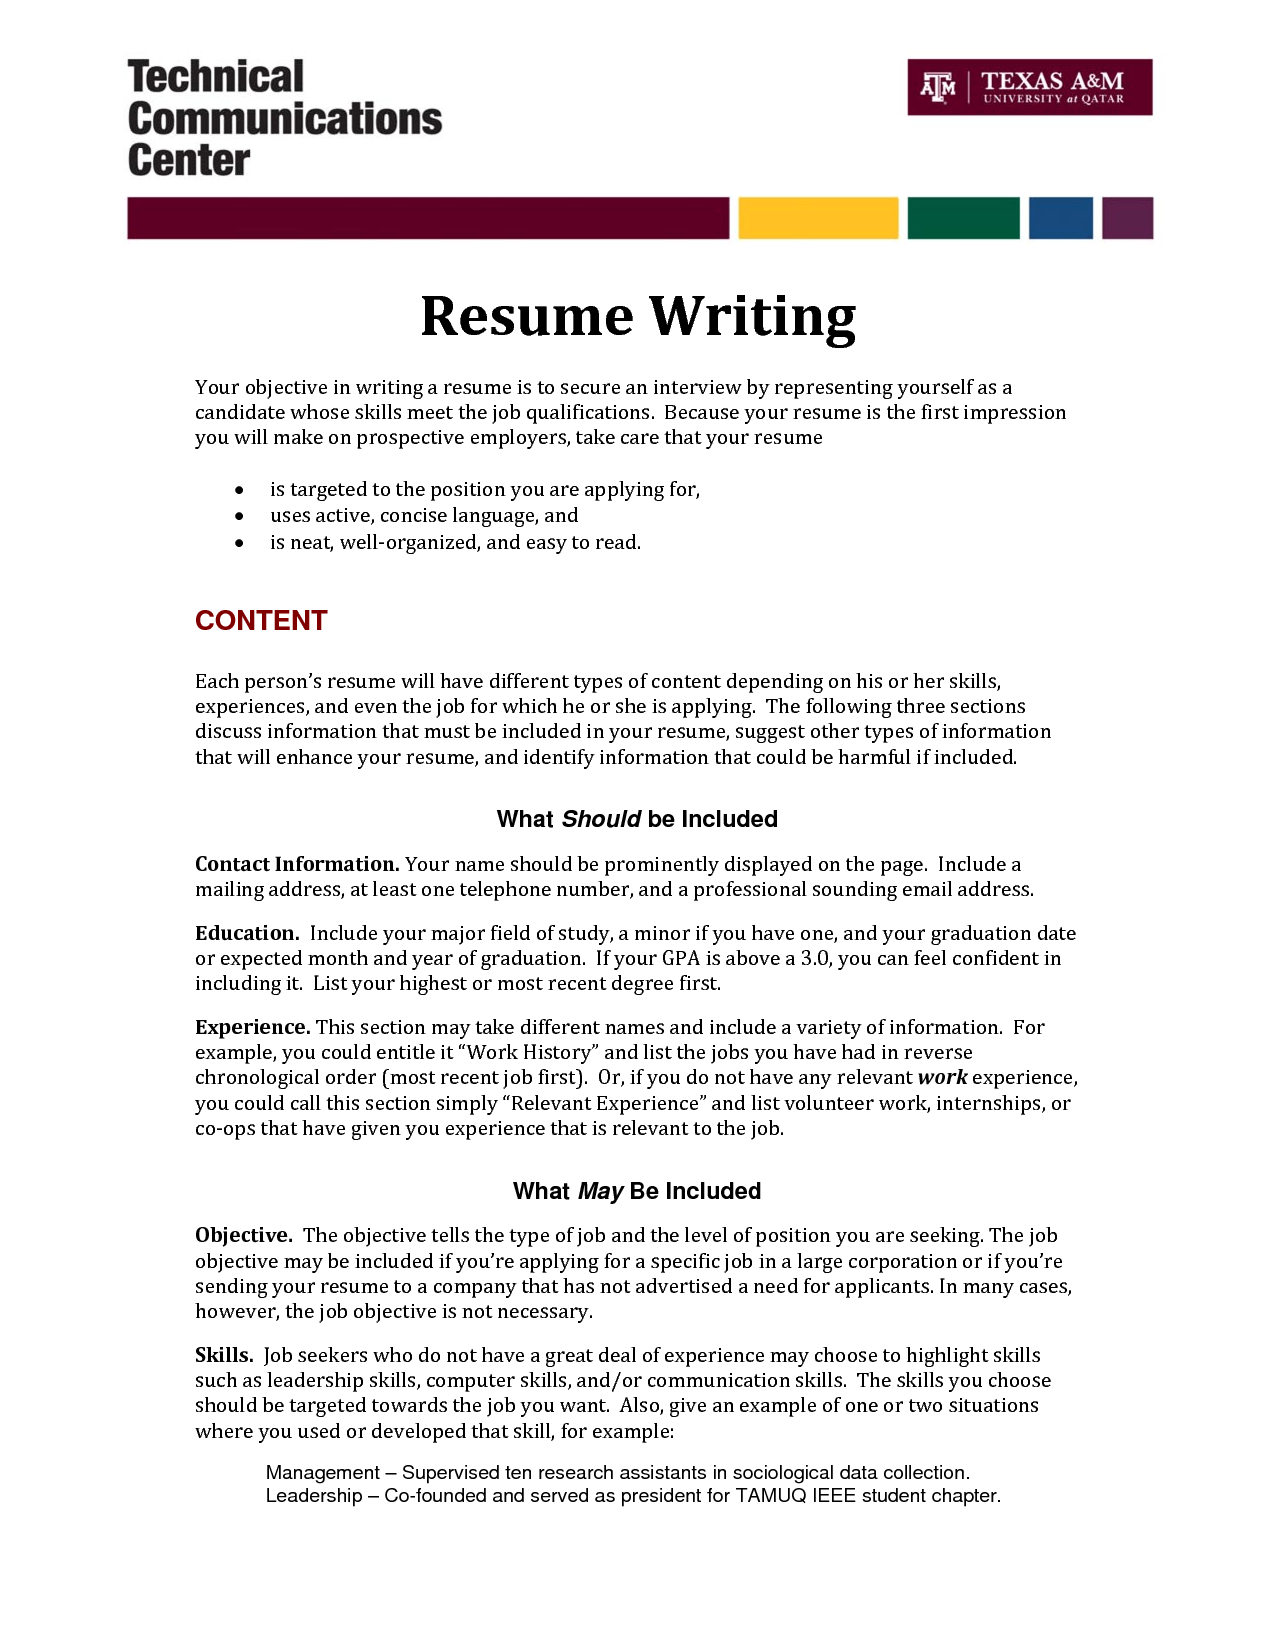 How To Write Resume Objective For Internship Articles To Help